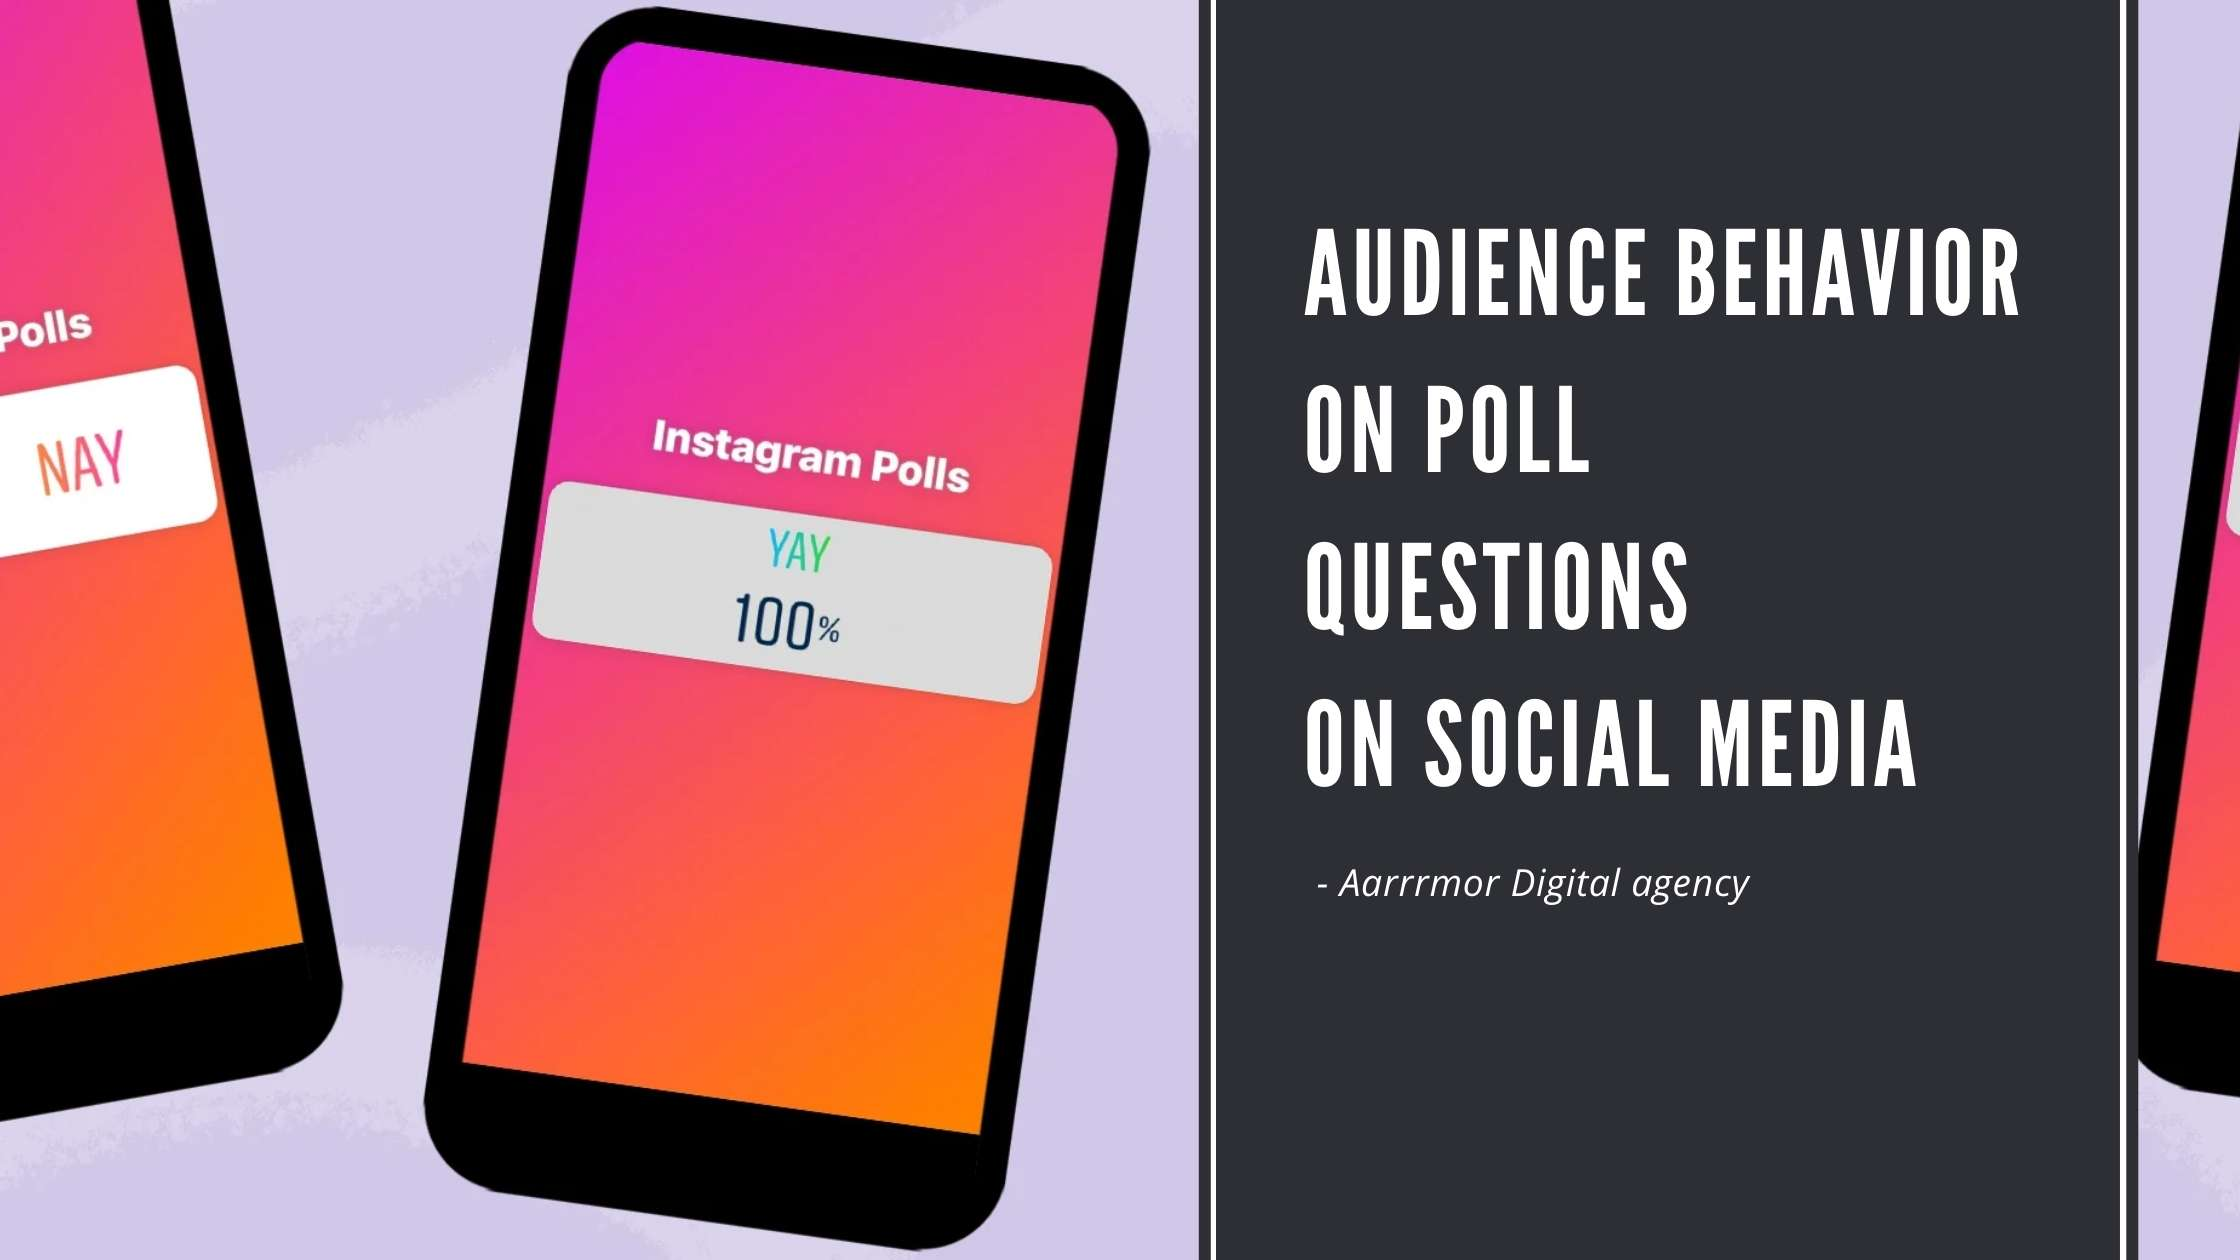 Poll Question on Social Media Platforms to understand Audience Behavior